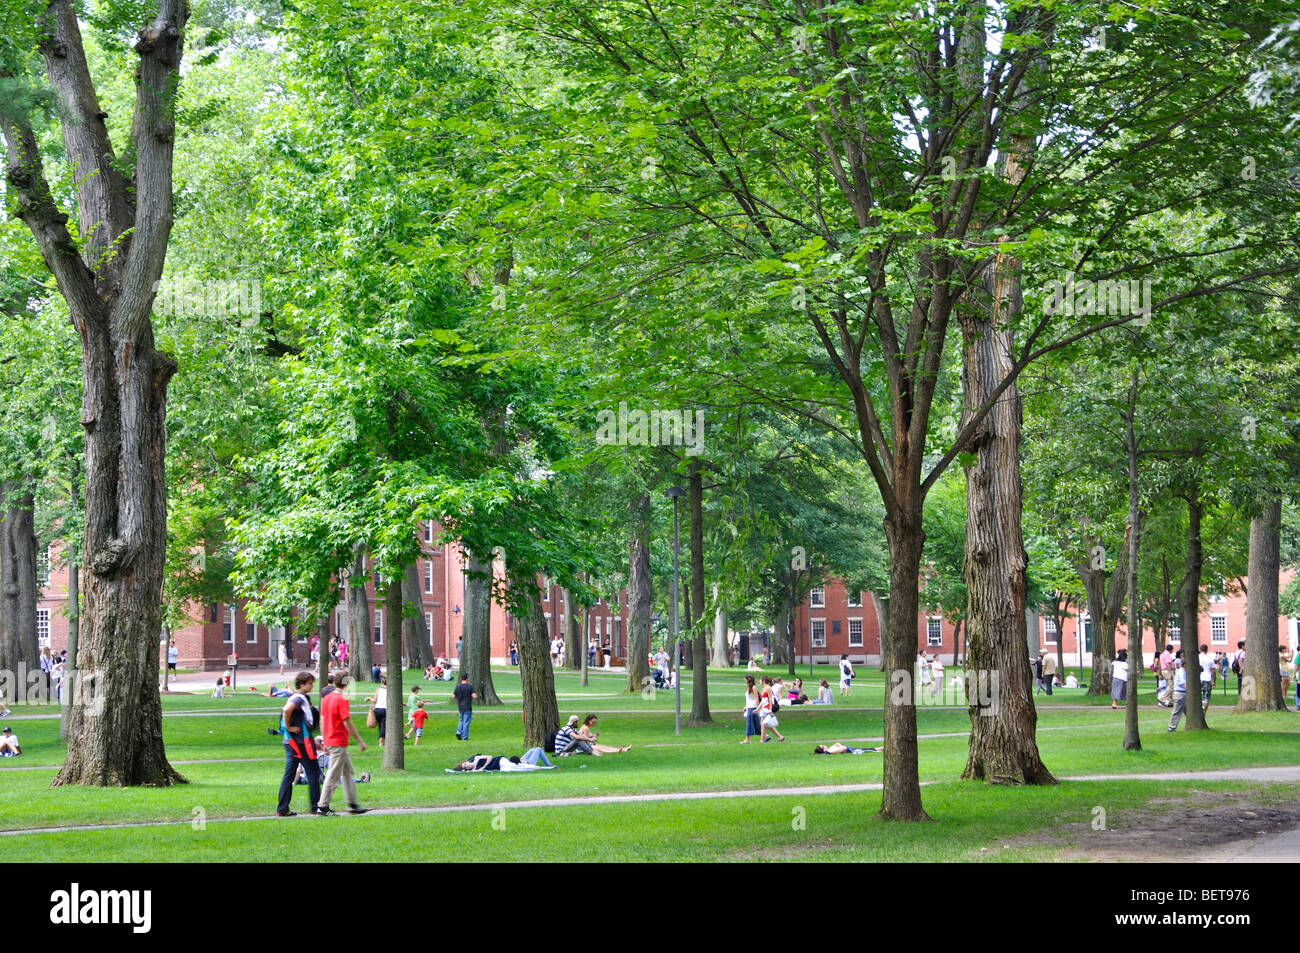 Harvard University campus in Cambridge, Massachusetts - Stock Image